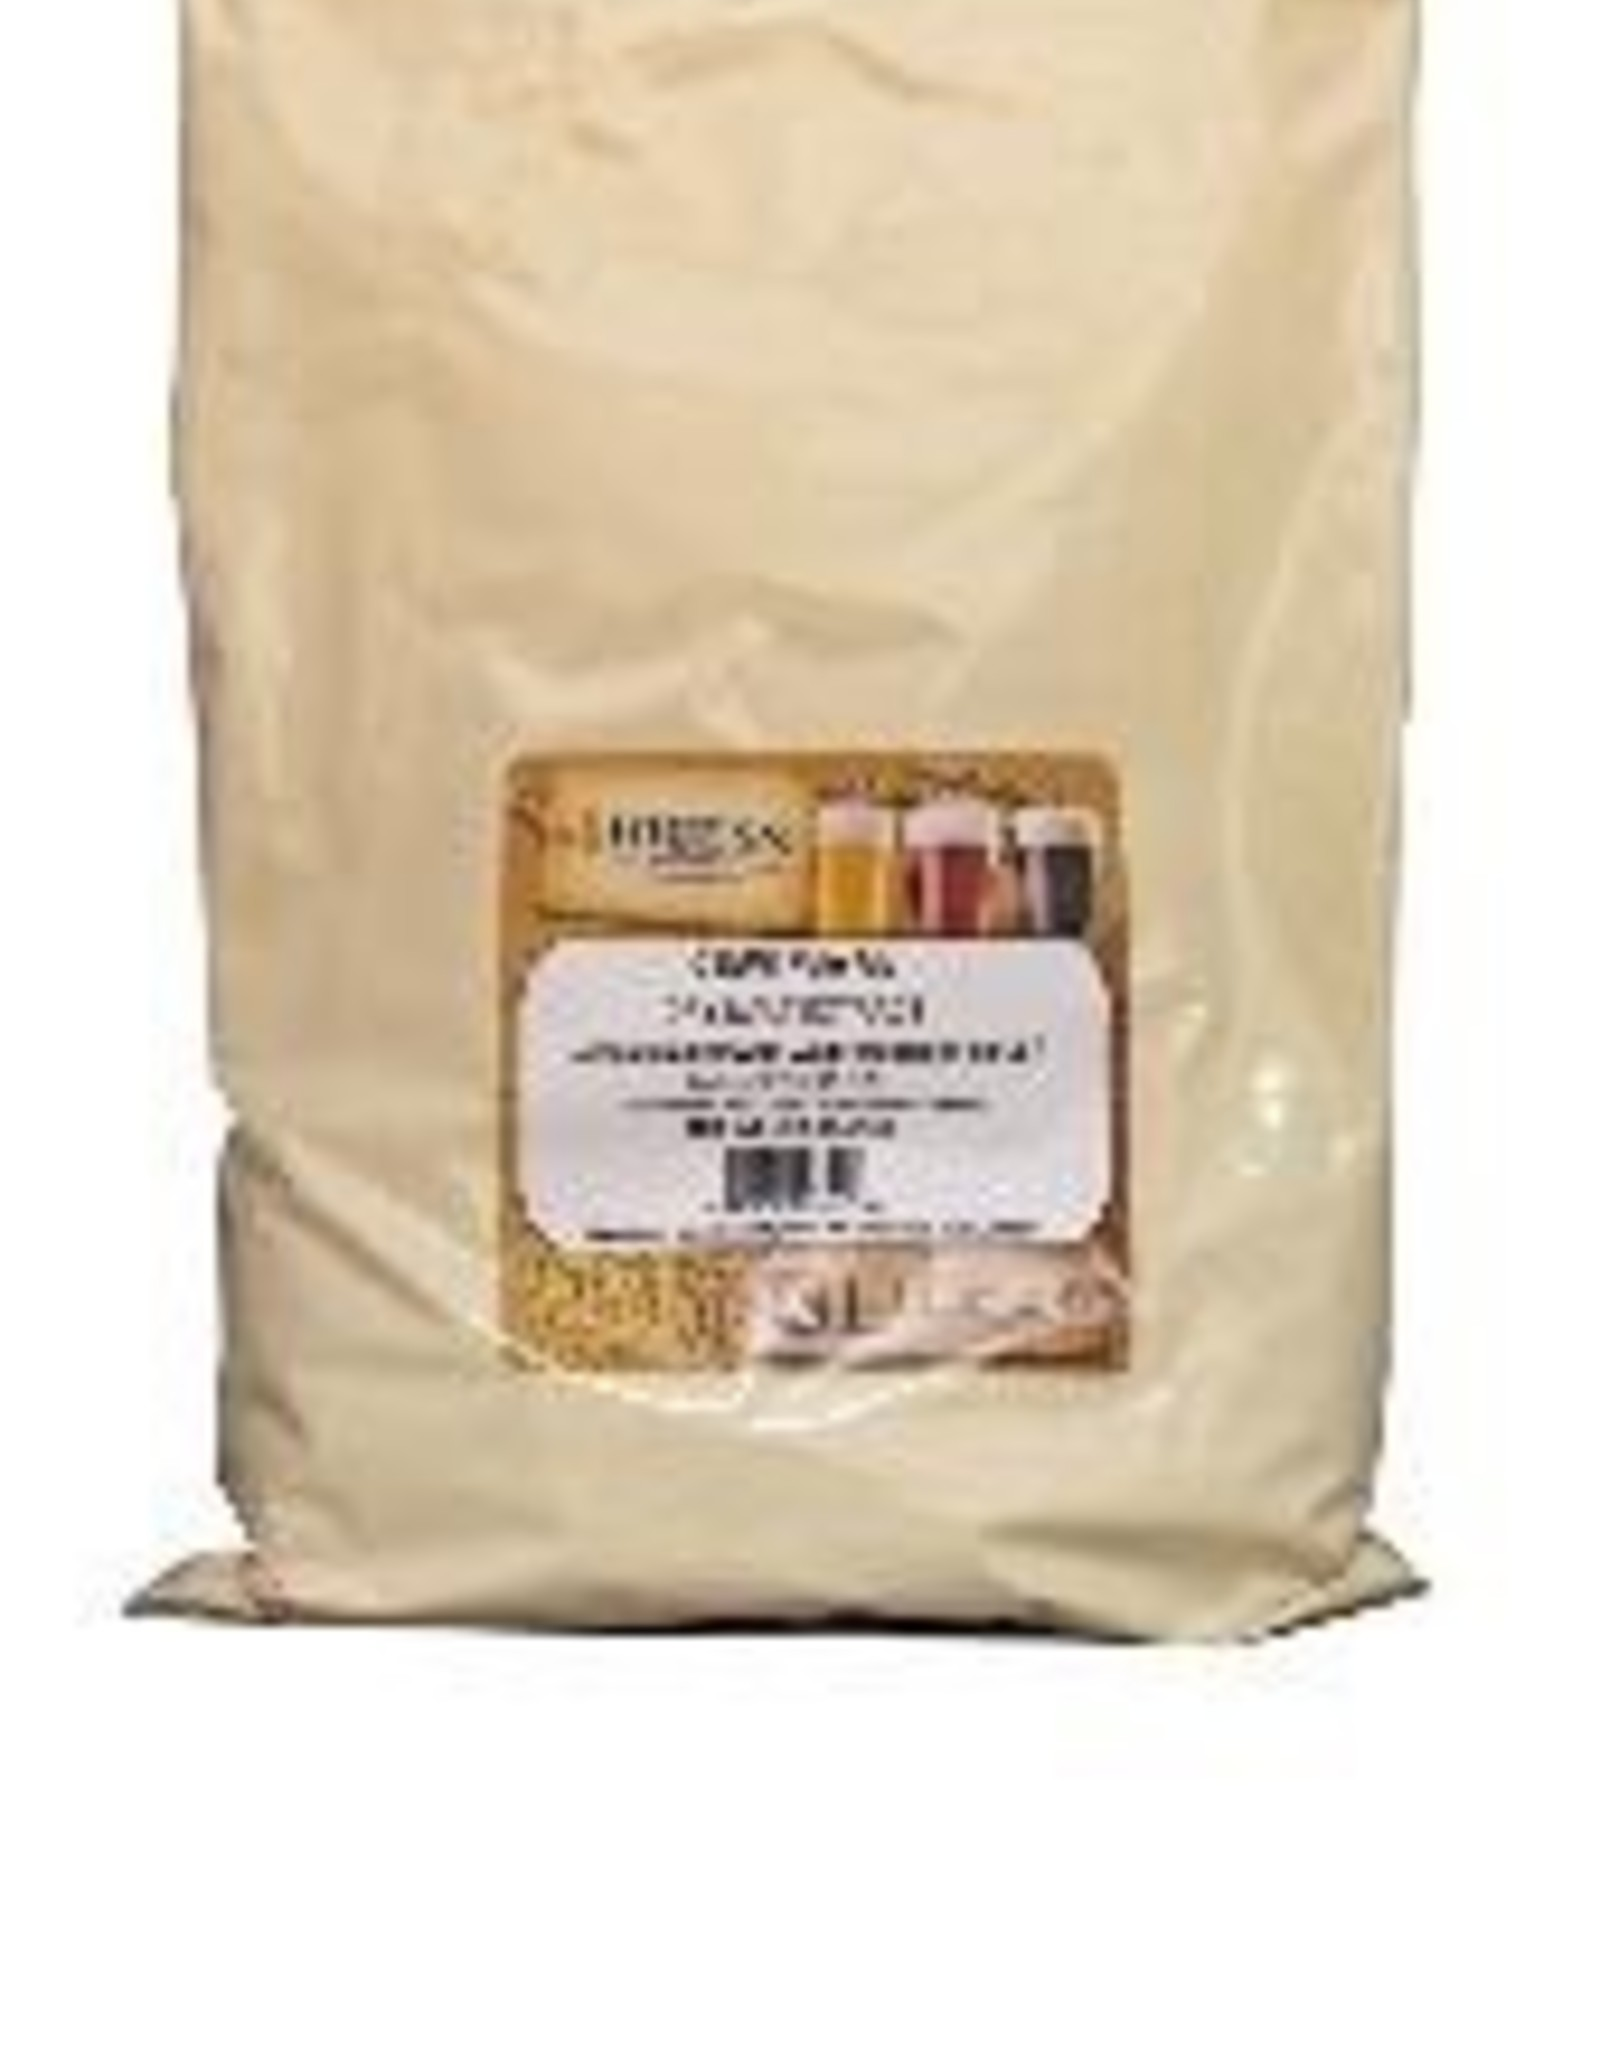 BRIESS Use up to 100% for all-extract ales. Its rich malty flavor provides a strong malty backbone that supports inclusions of even the most demanding specialty malts. Use with other base malt extracts for additional flavor, especially developing warm, malty and